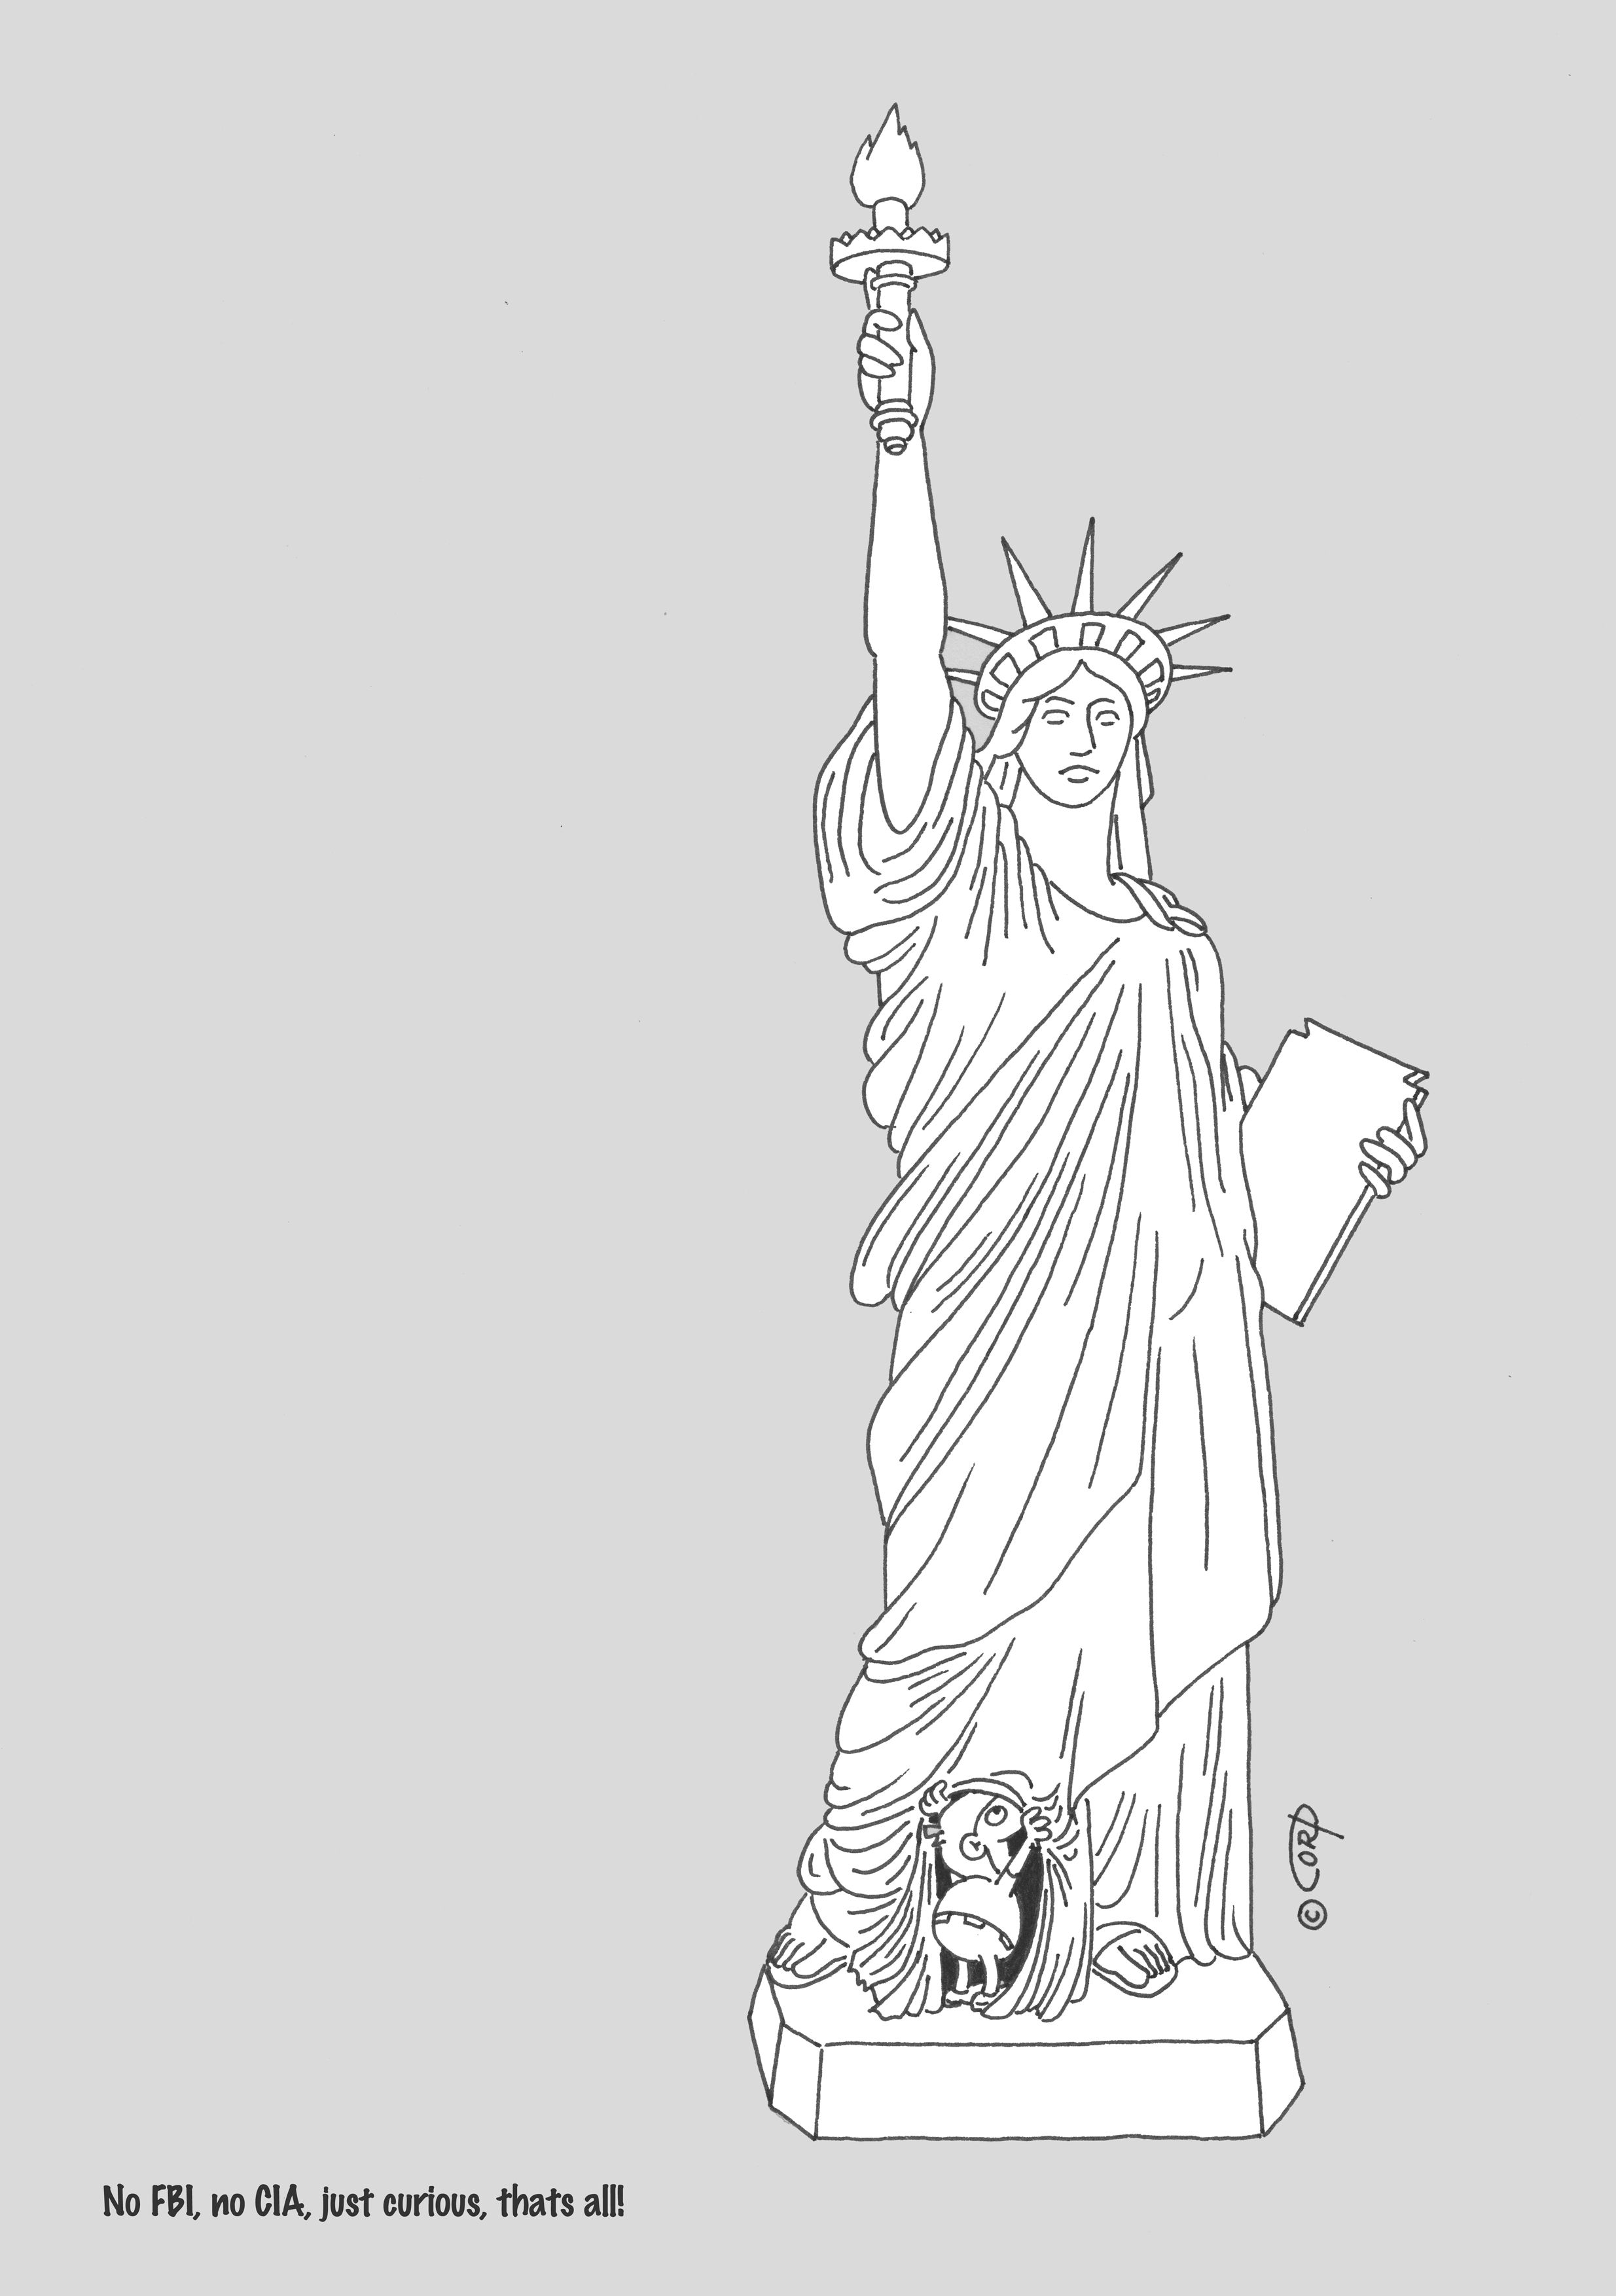 funny drawing cartoons humor comics statue of liberty